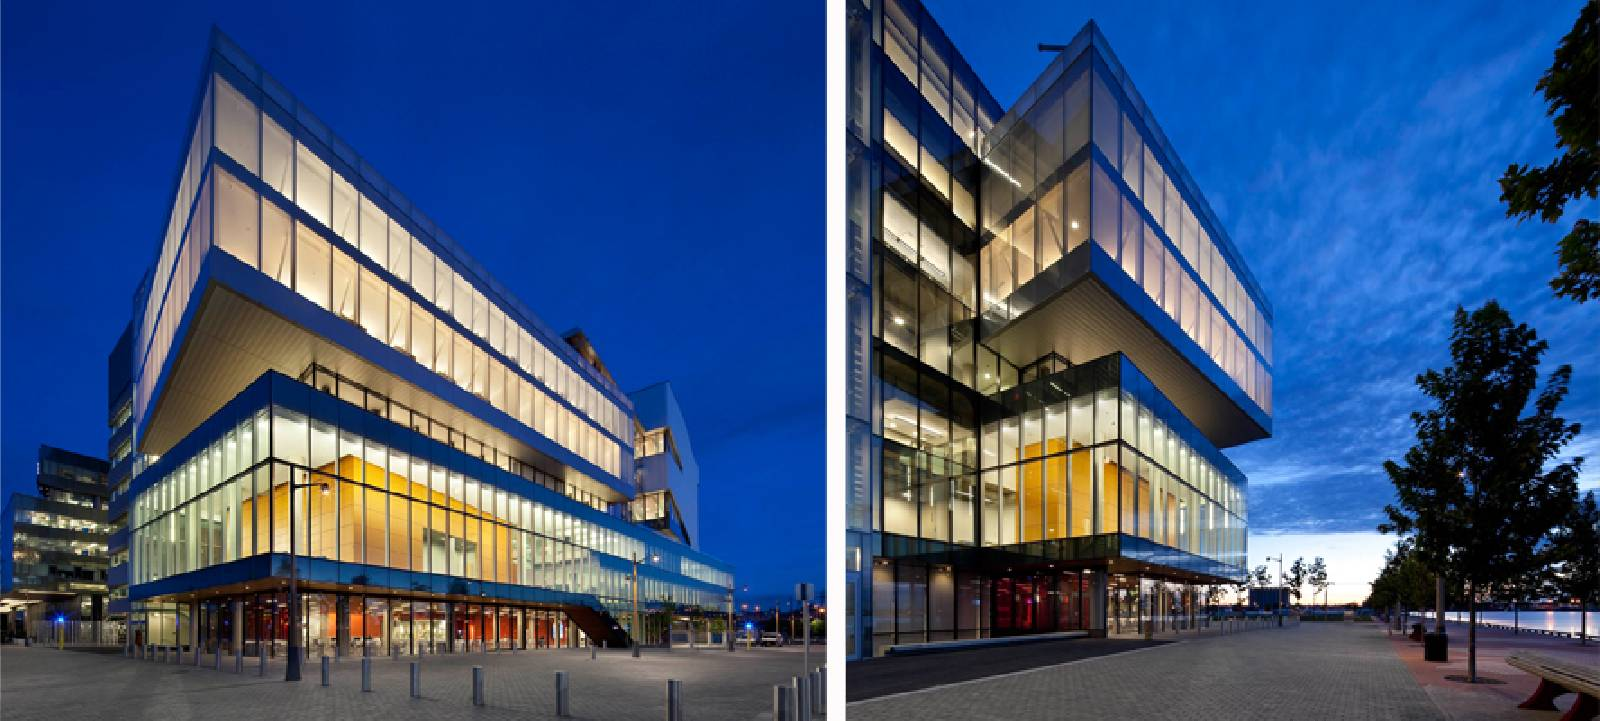 05 George Brown College Waterfront Campus By Stantec KPMB